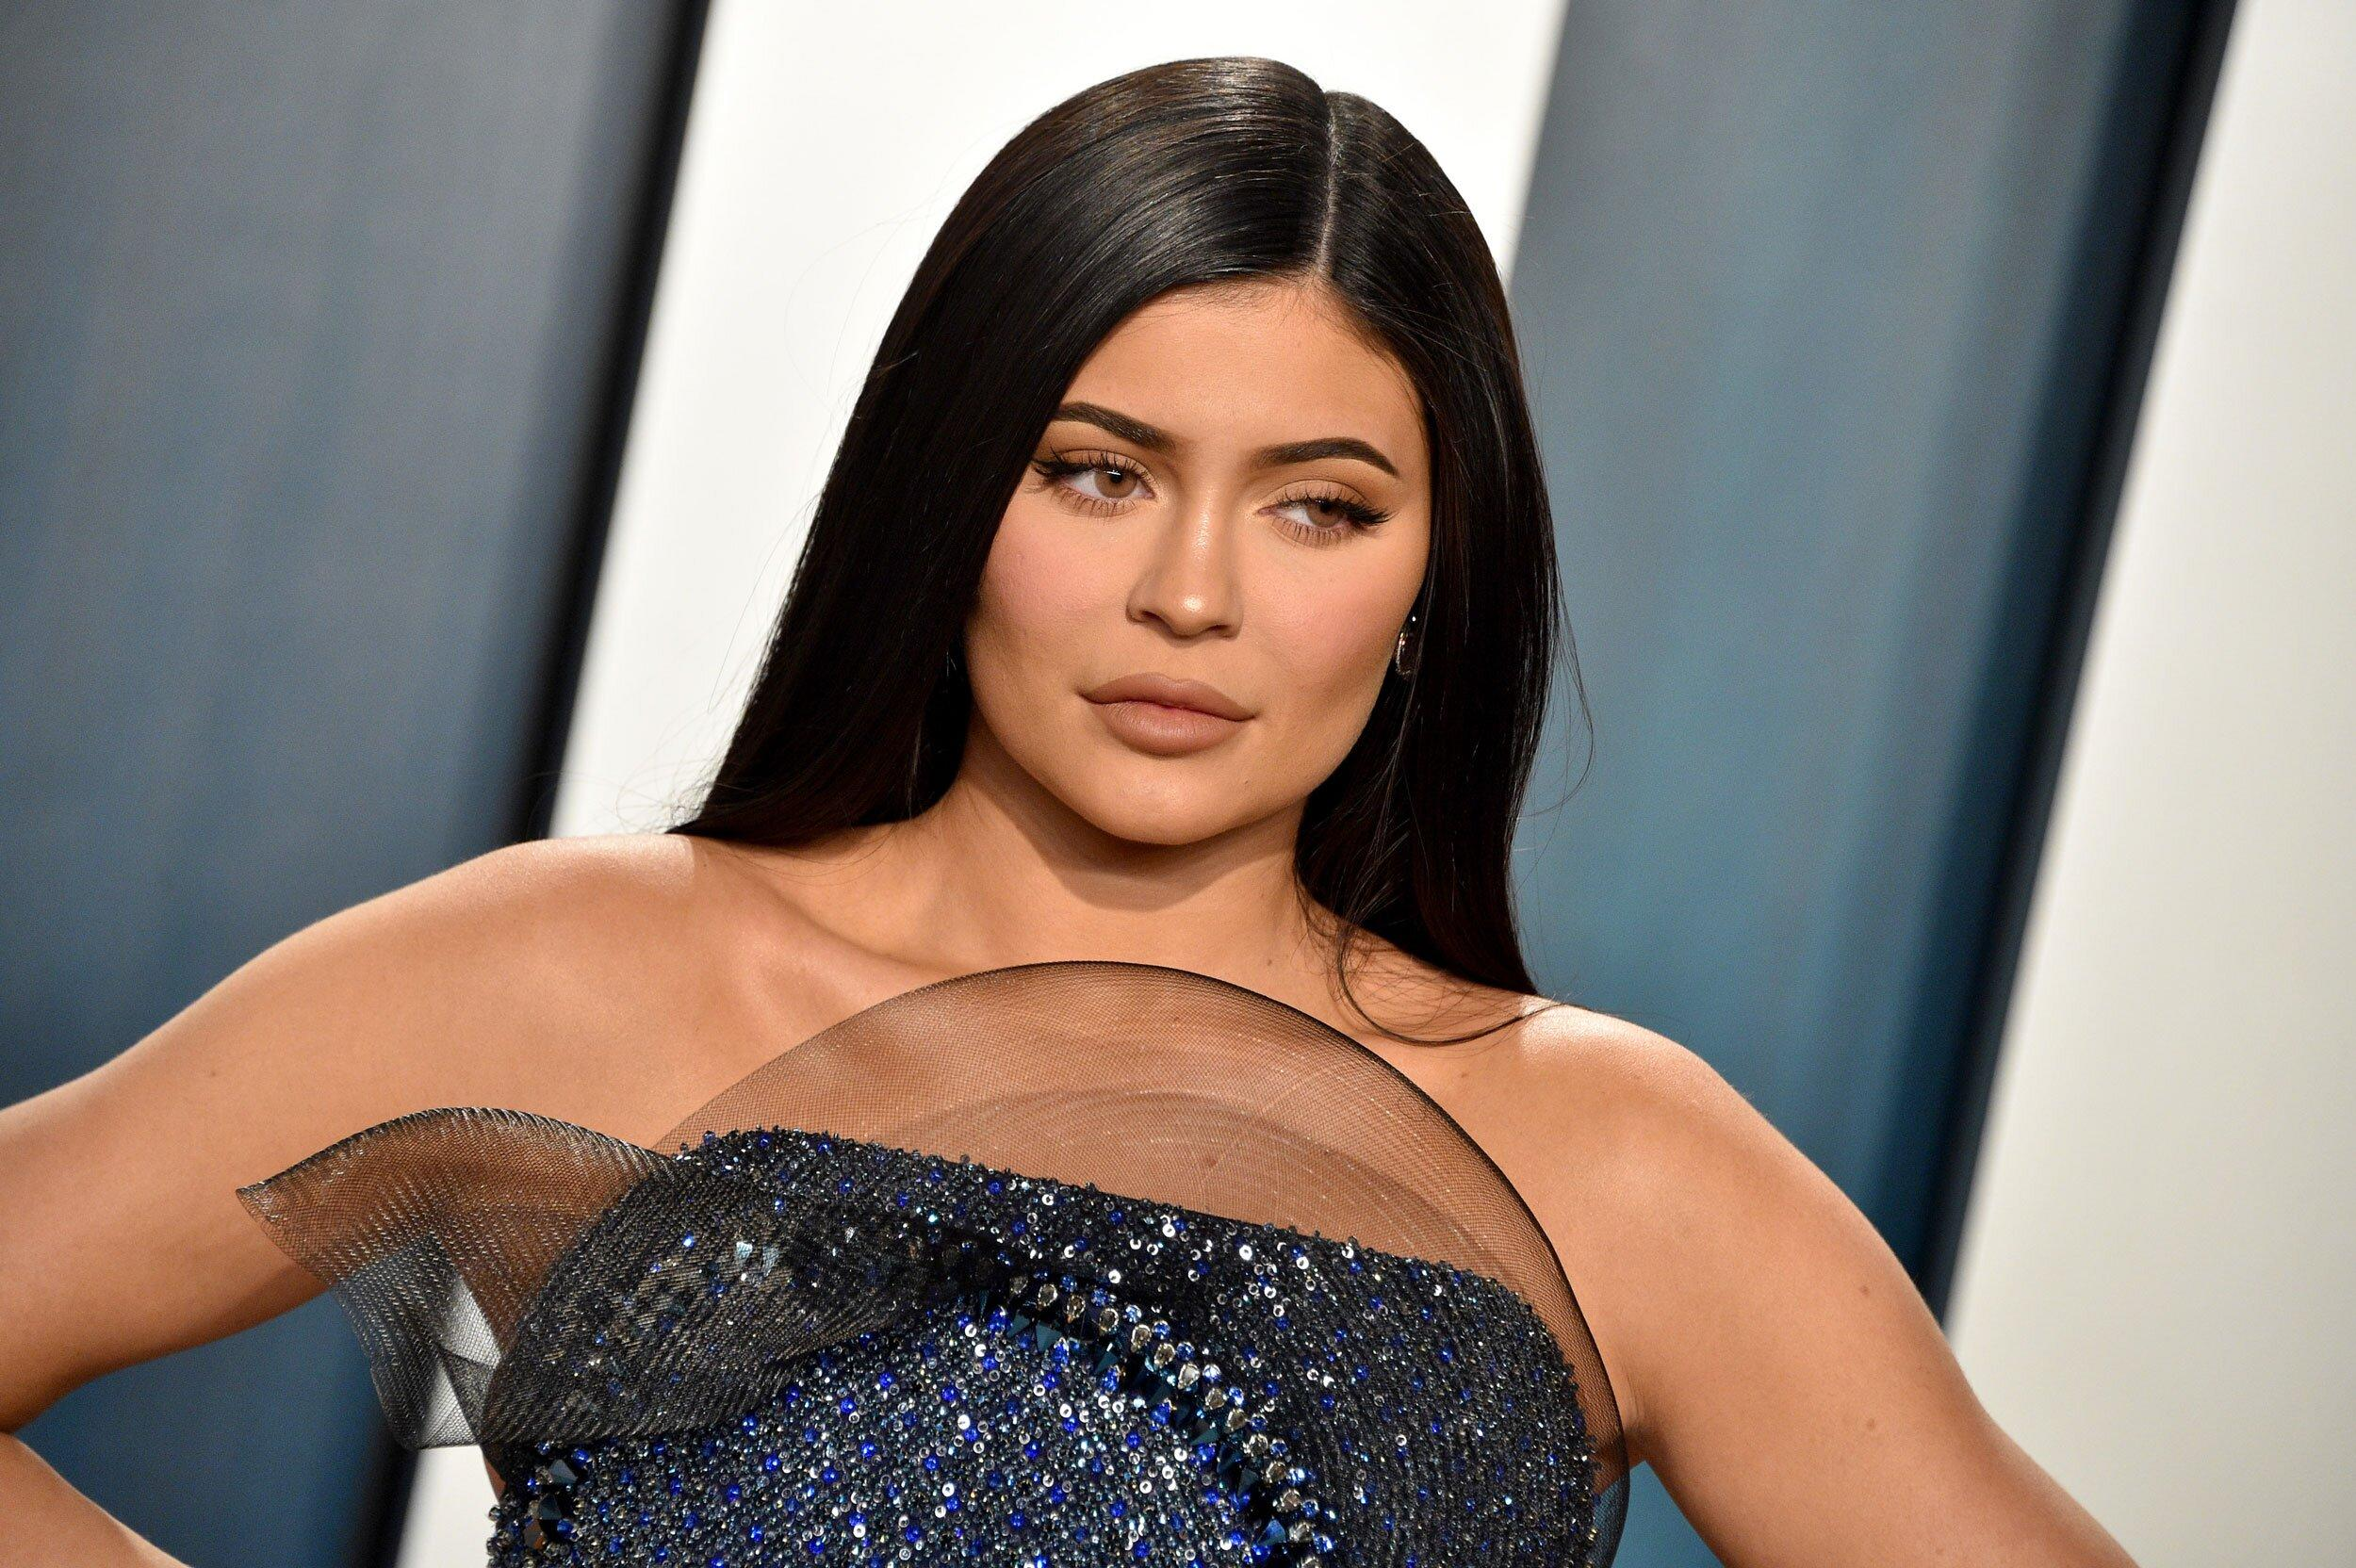 Kylie Jenner Deleted An Instagram Post After She Got Called Out